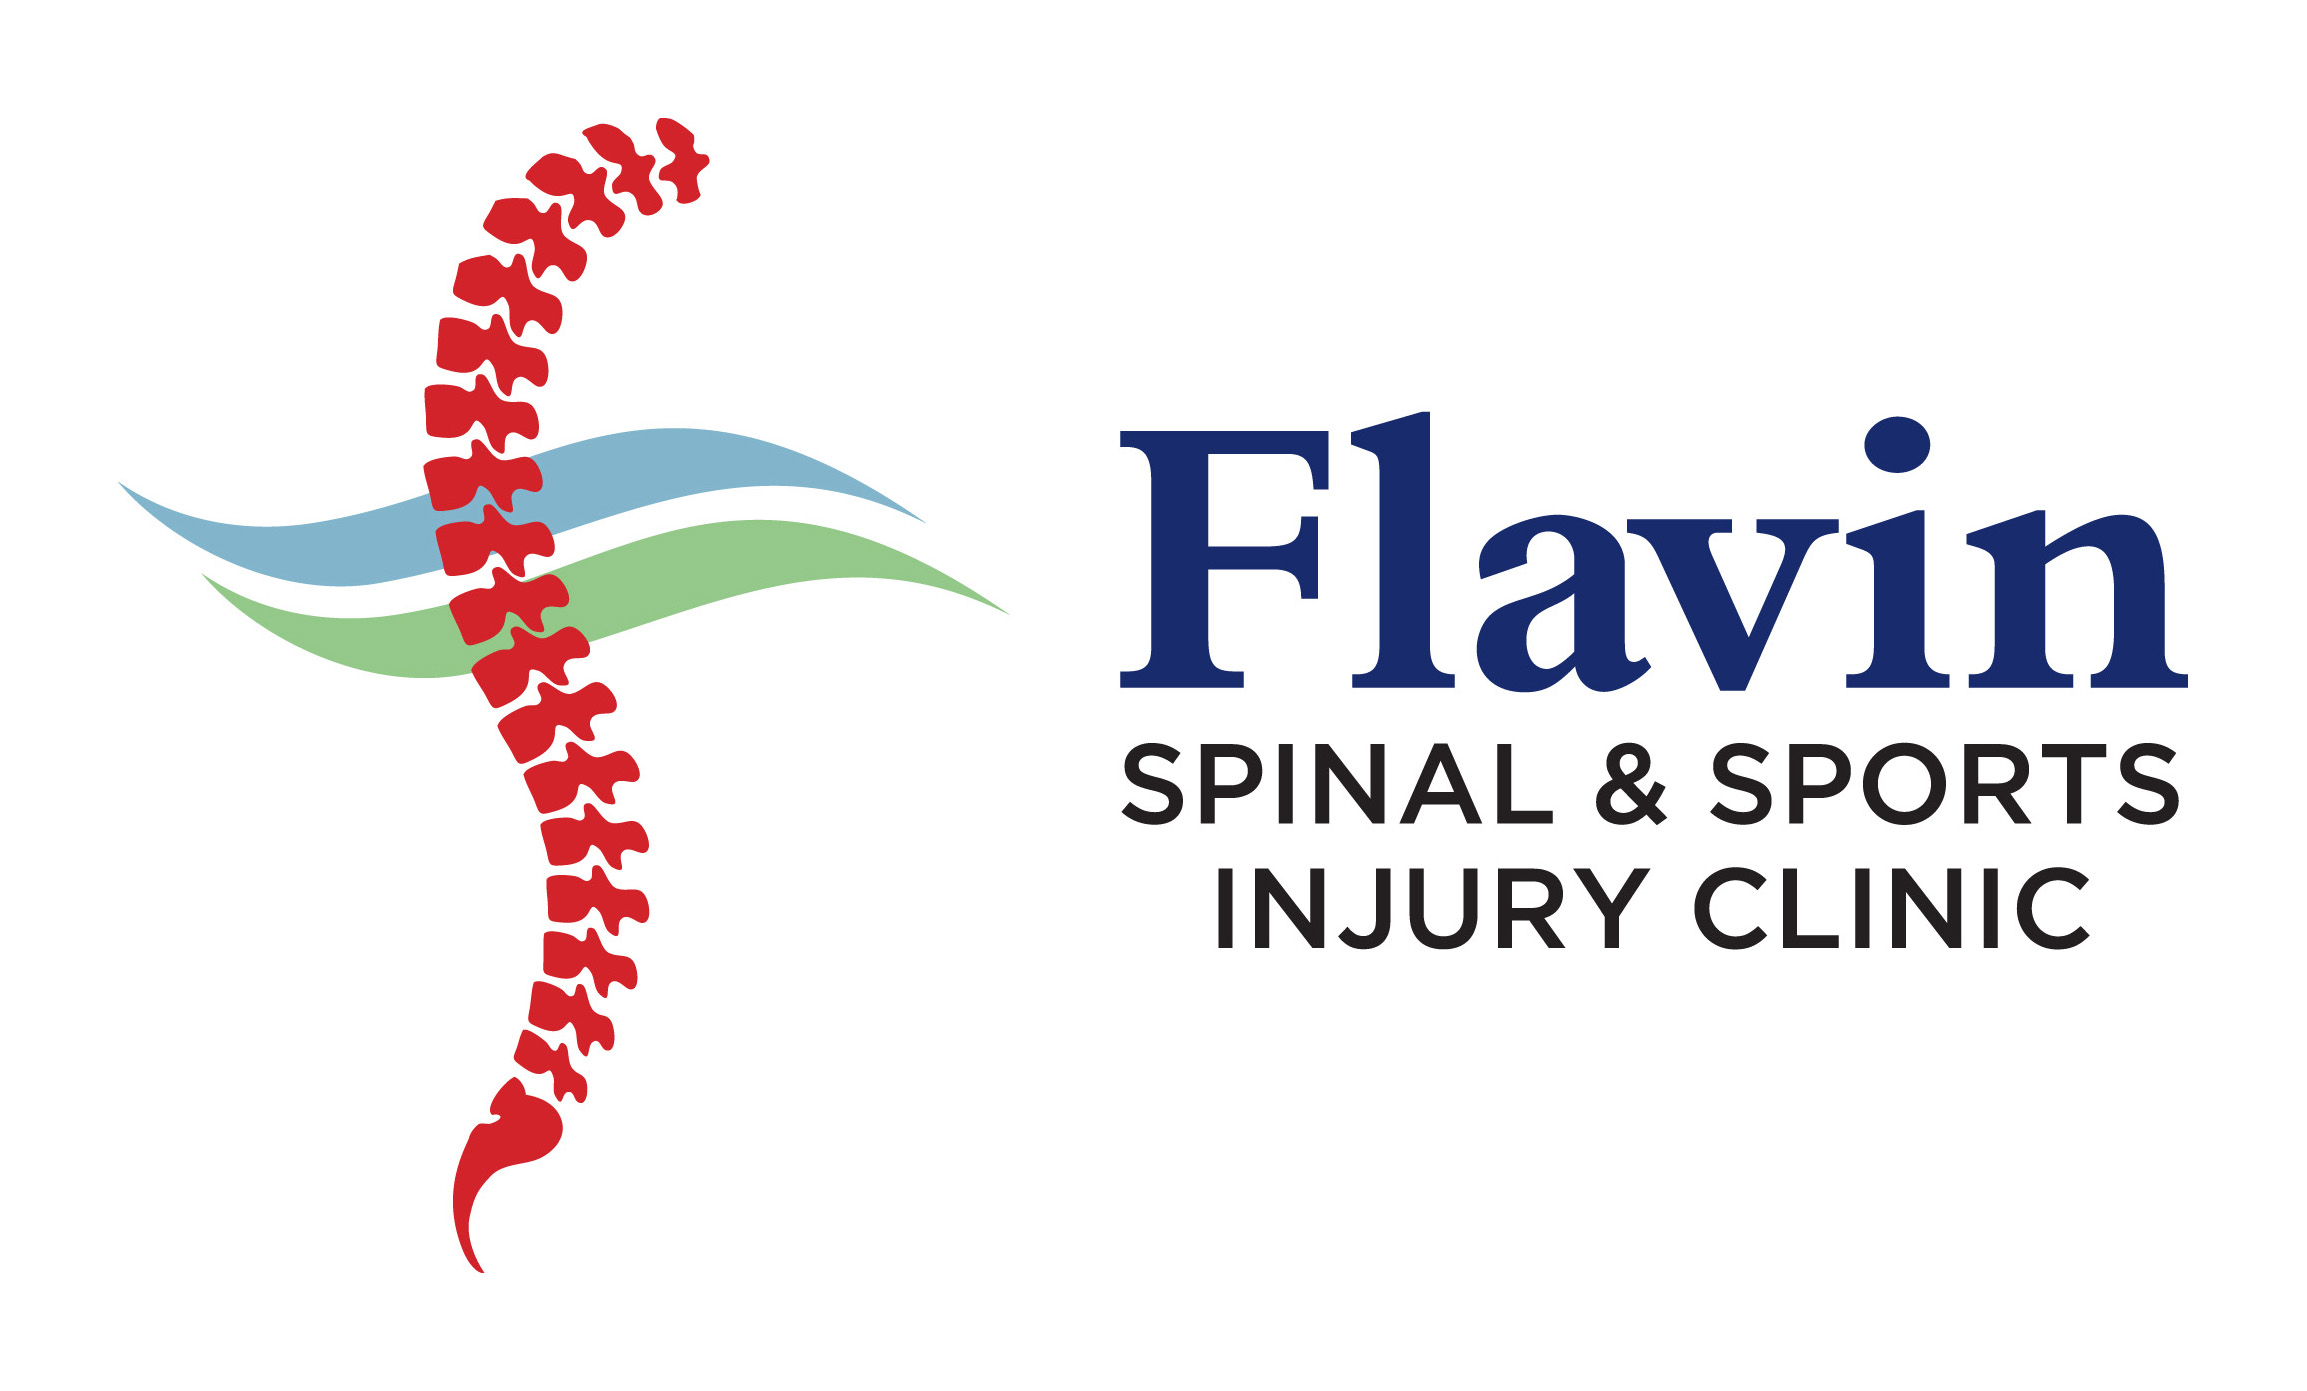 Flavin Spinal and Sports Injury Clinic company logo